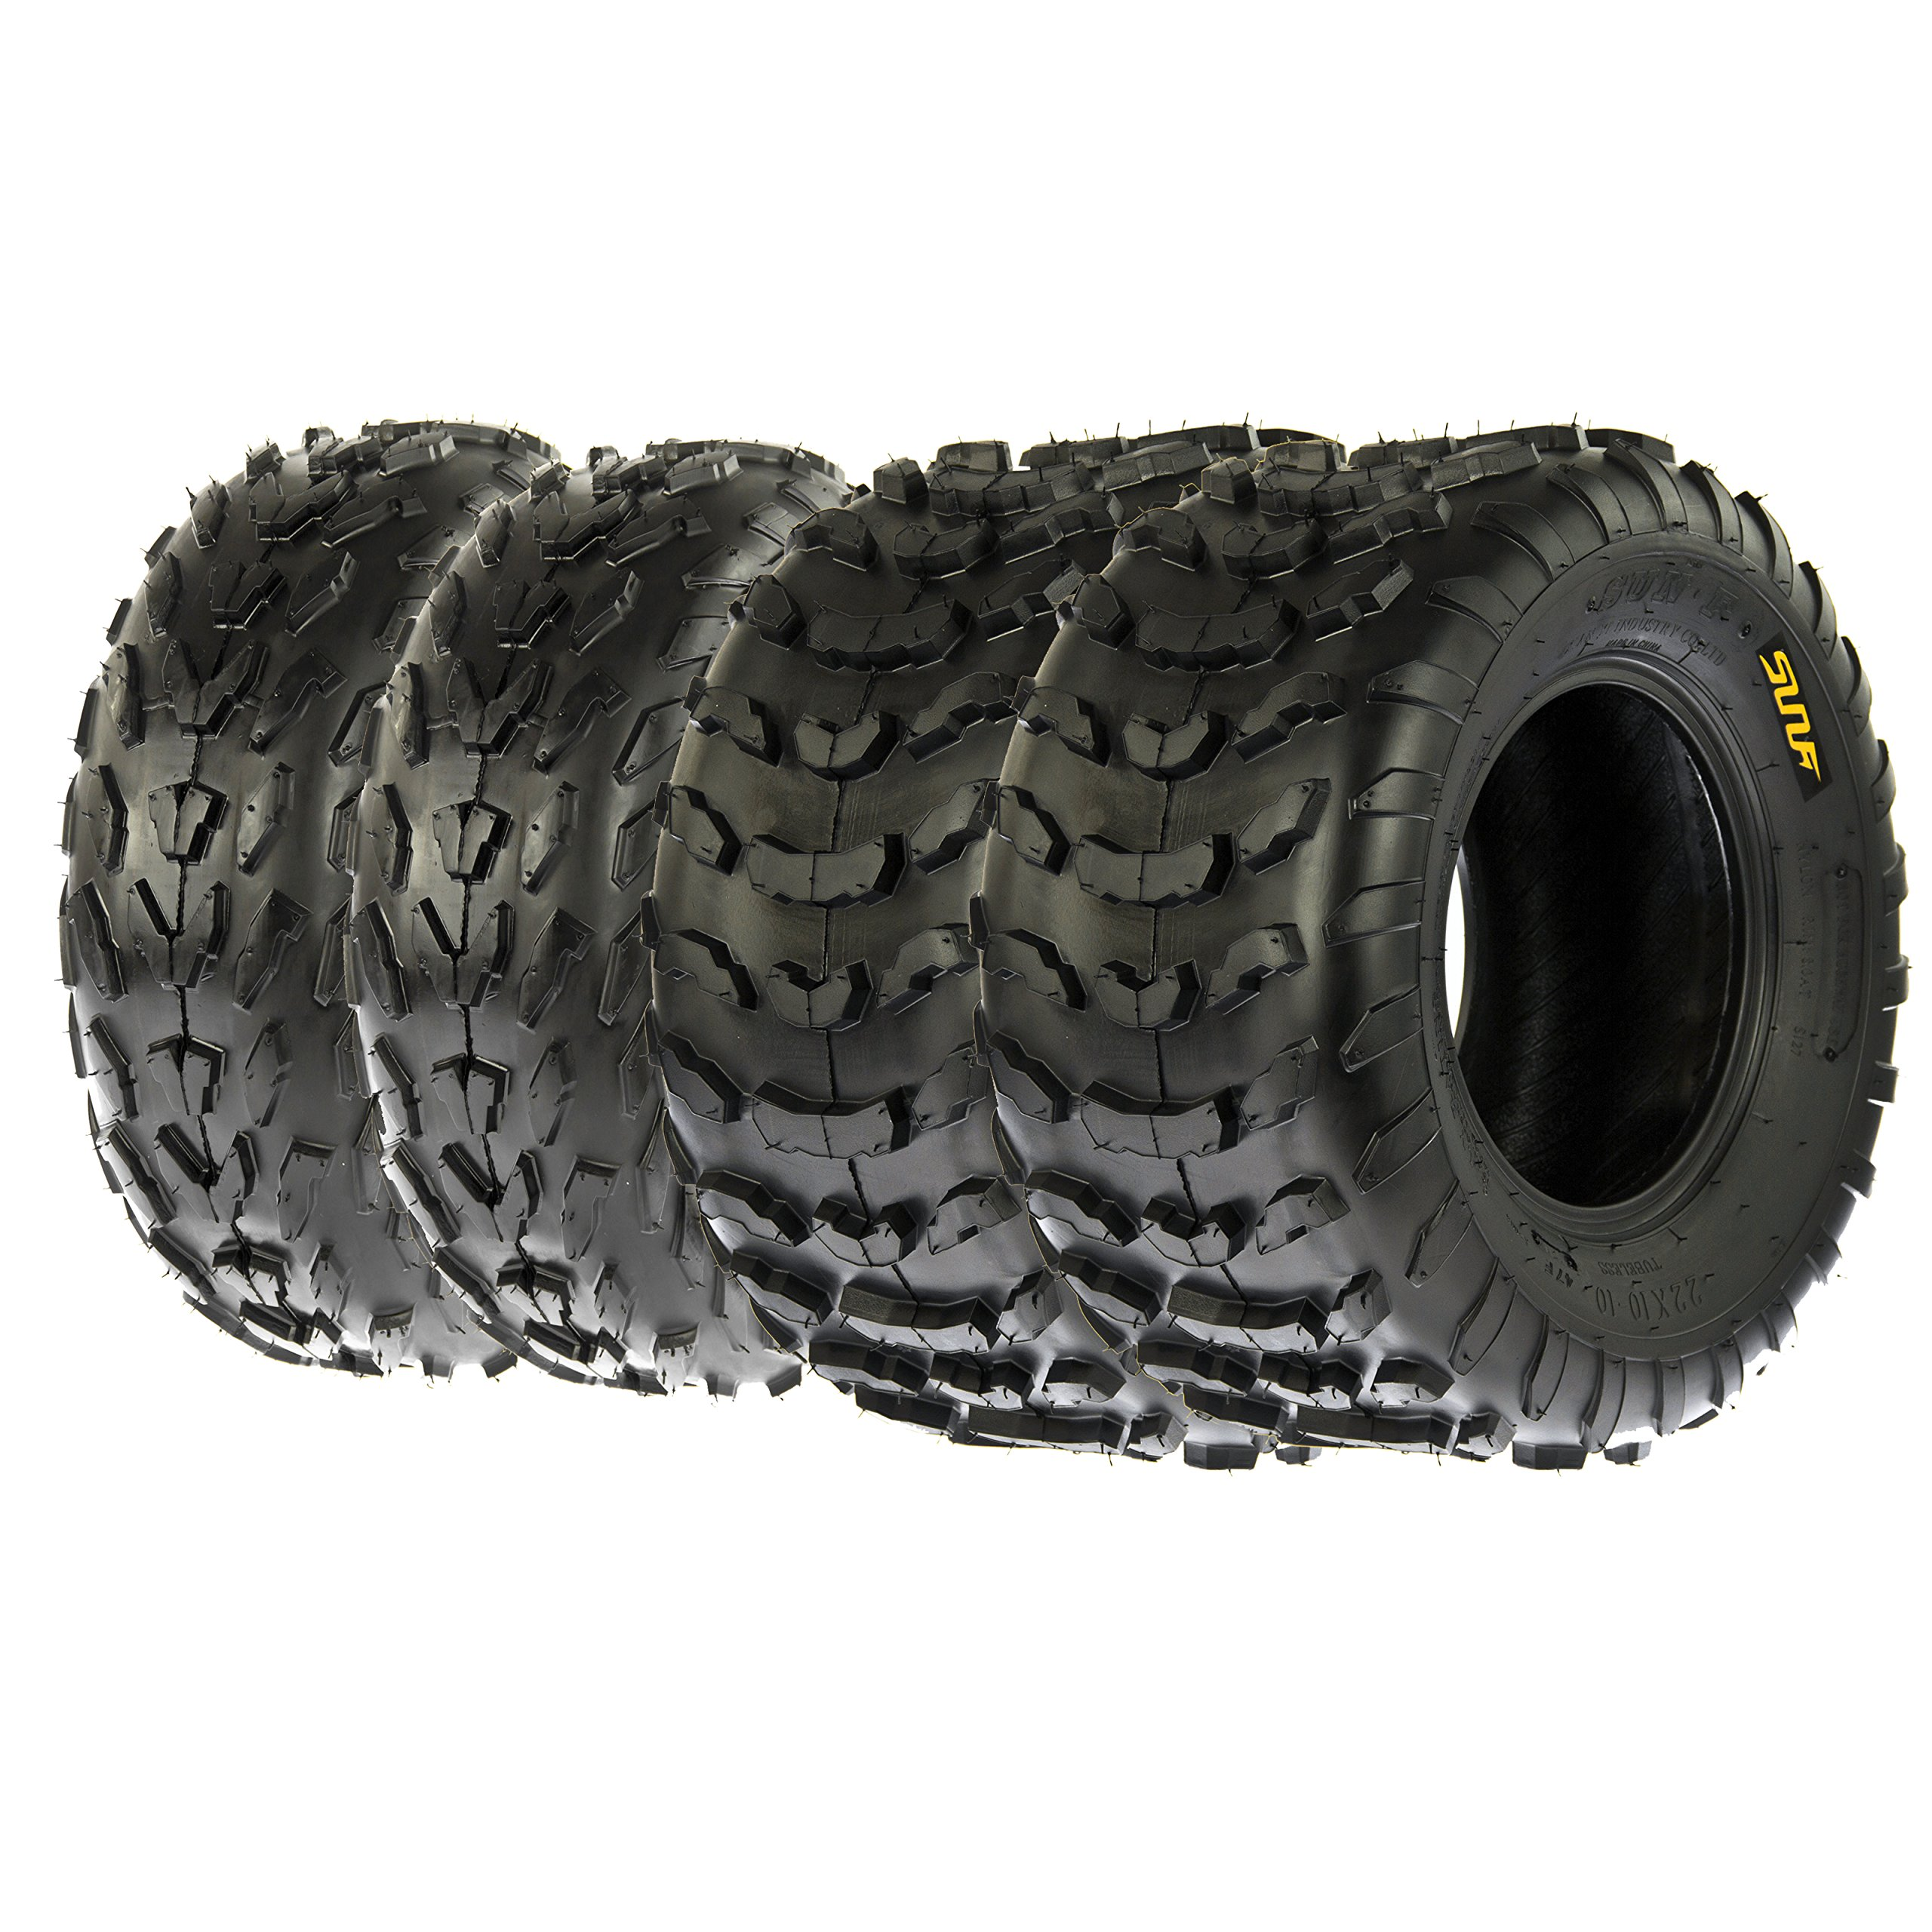 SunF A007 ATV / UTV Tires 23x7-10 Front & A006 22x10-10 Rear, Set of 4